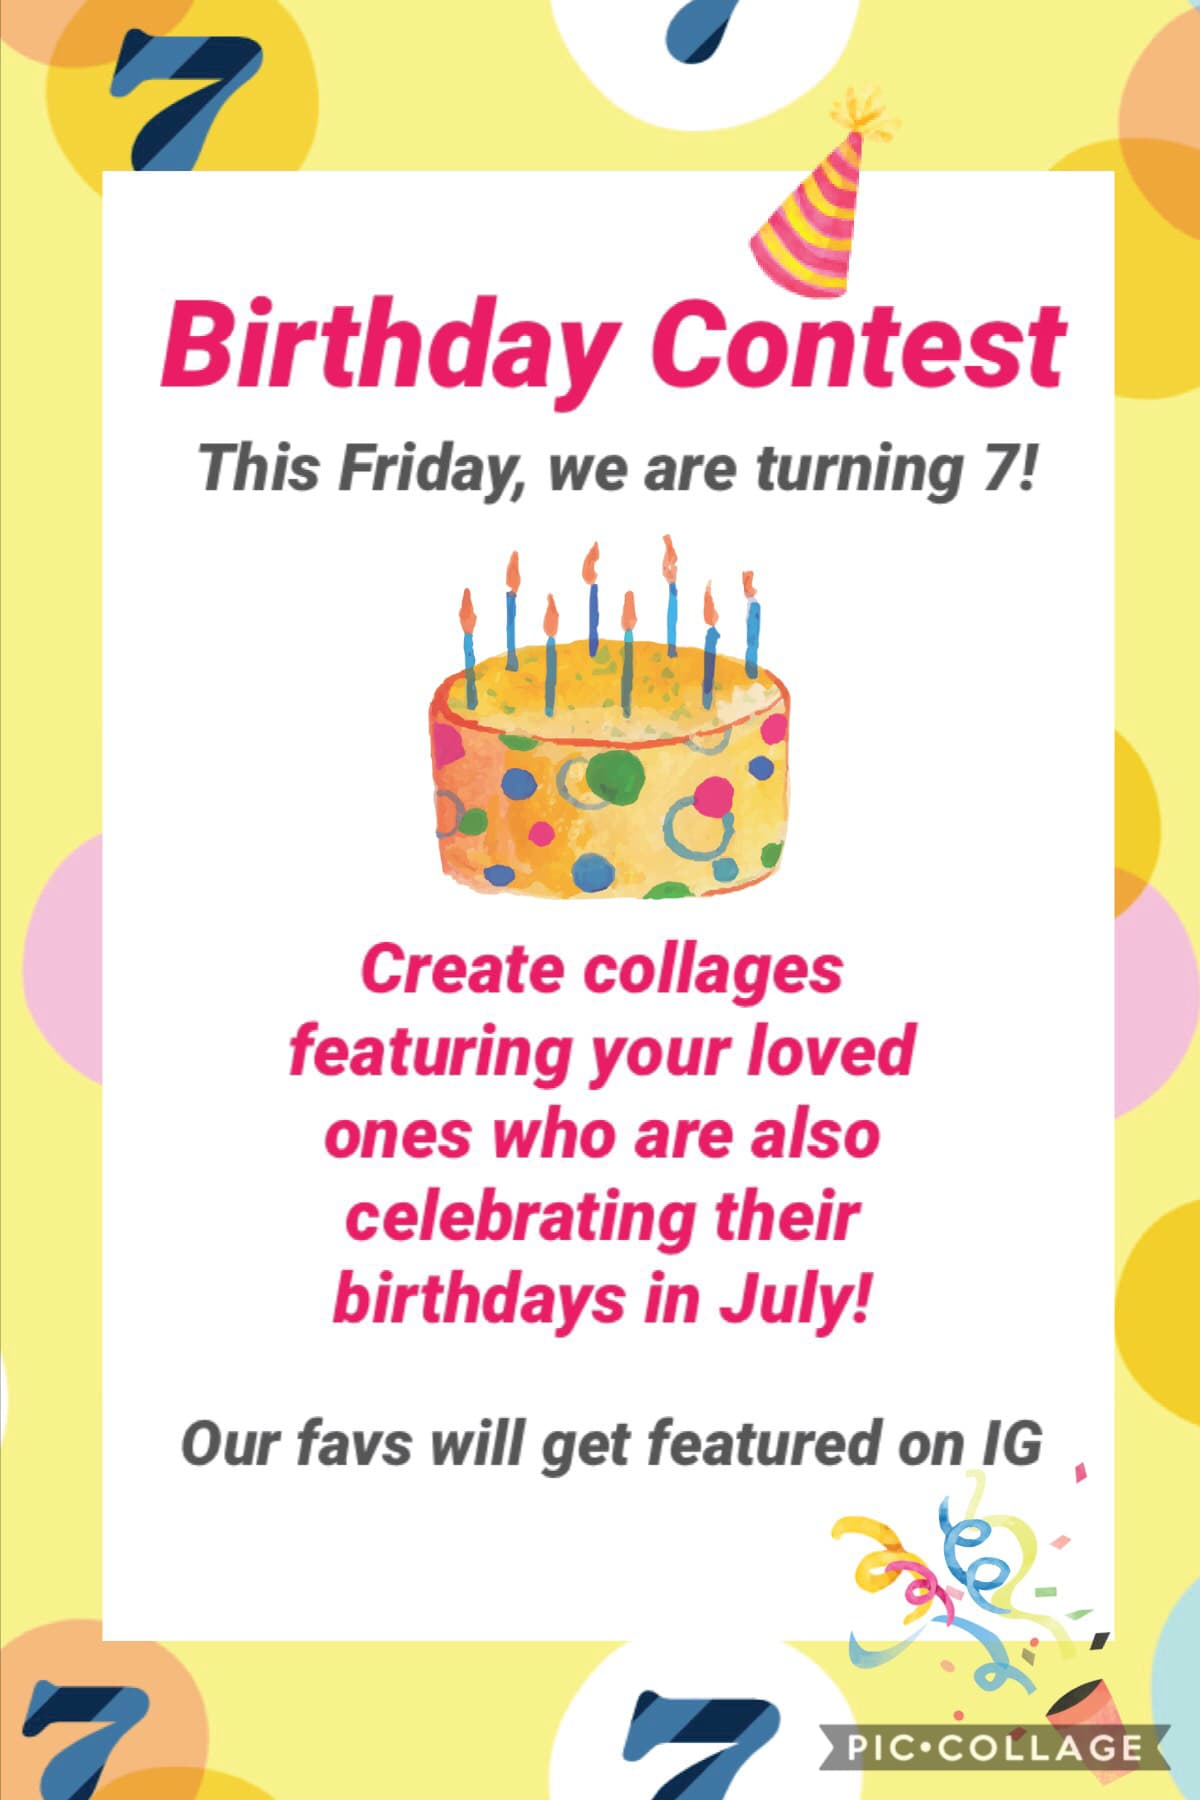 Join us to celebrate PicCollage's 7th birthday by creating collages featuring your loved ones who are also celebrating their birthdays in July!